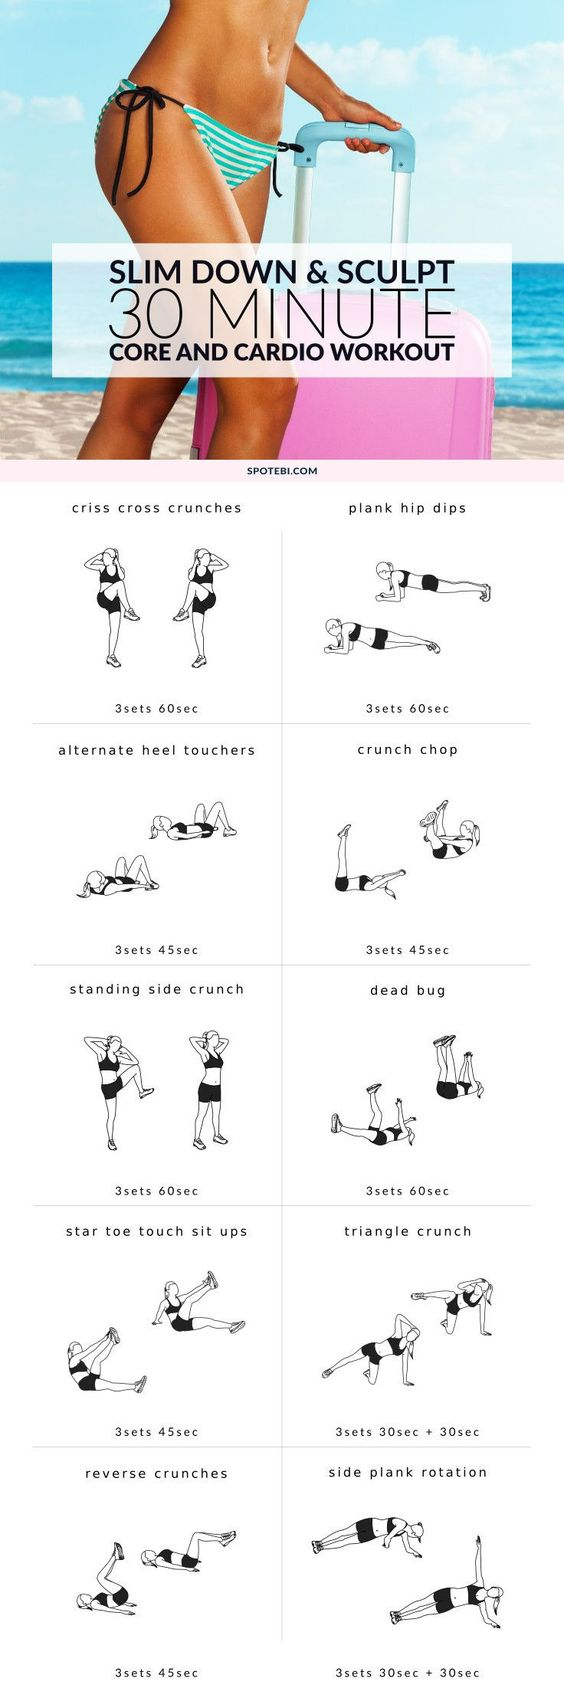 Weightlifting, Biking and 30 minute workout on Pinterest